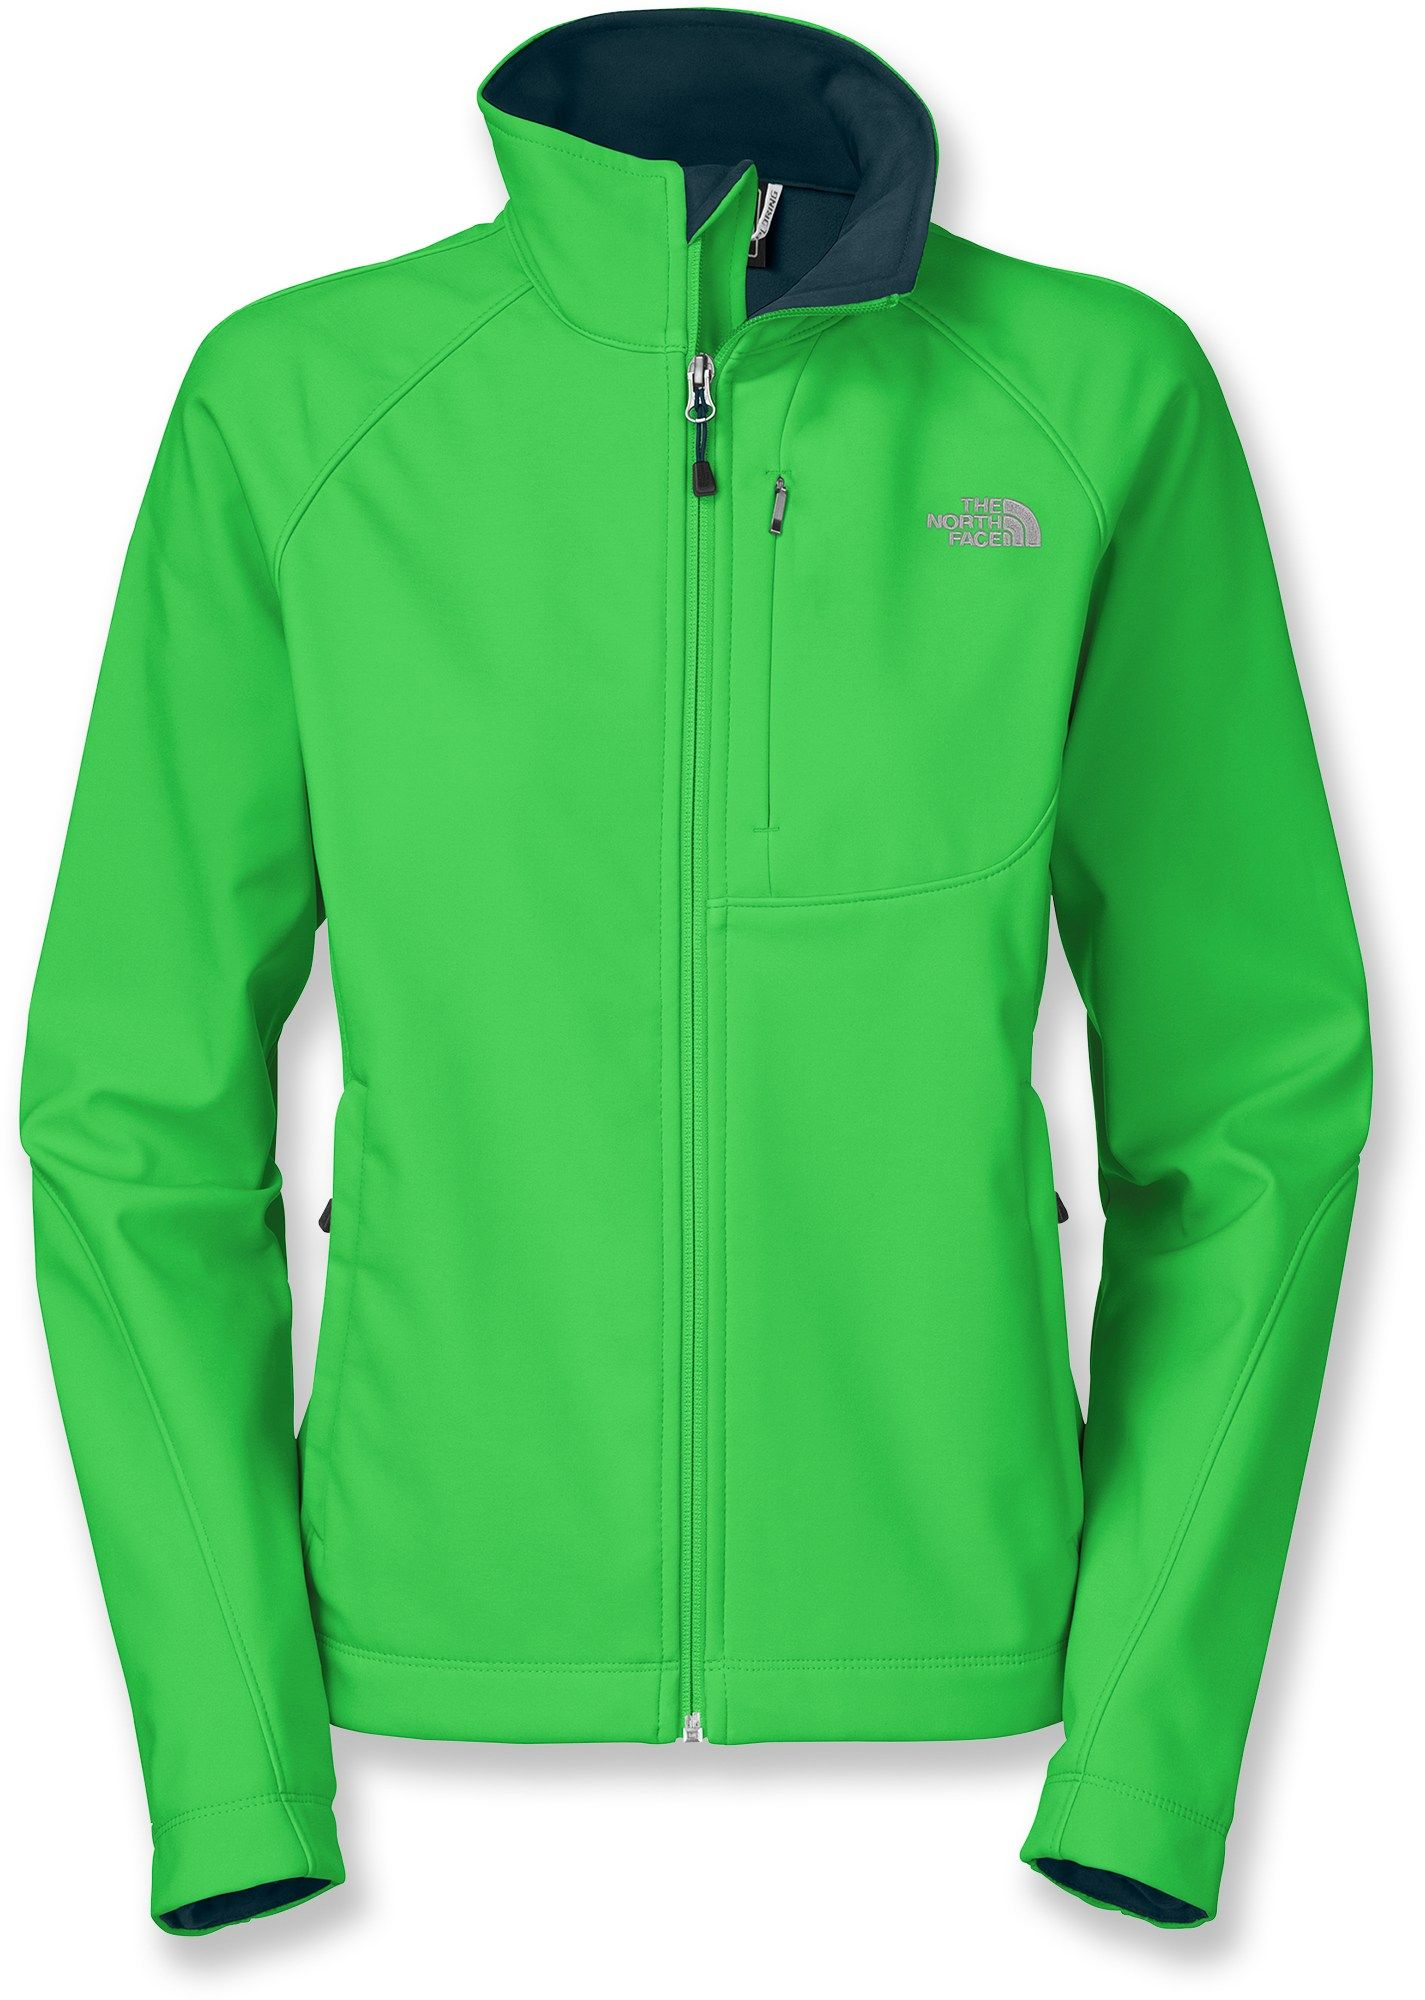 The North Face Apex Bionic Jacket Women S Rei Co Op Jackets For Women Dream Clothes North Face Jacket [ 2000 x 1425 Pixel ]